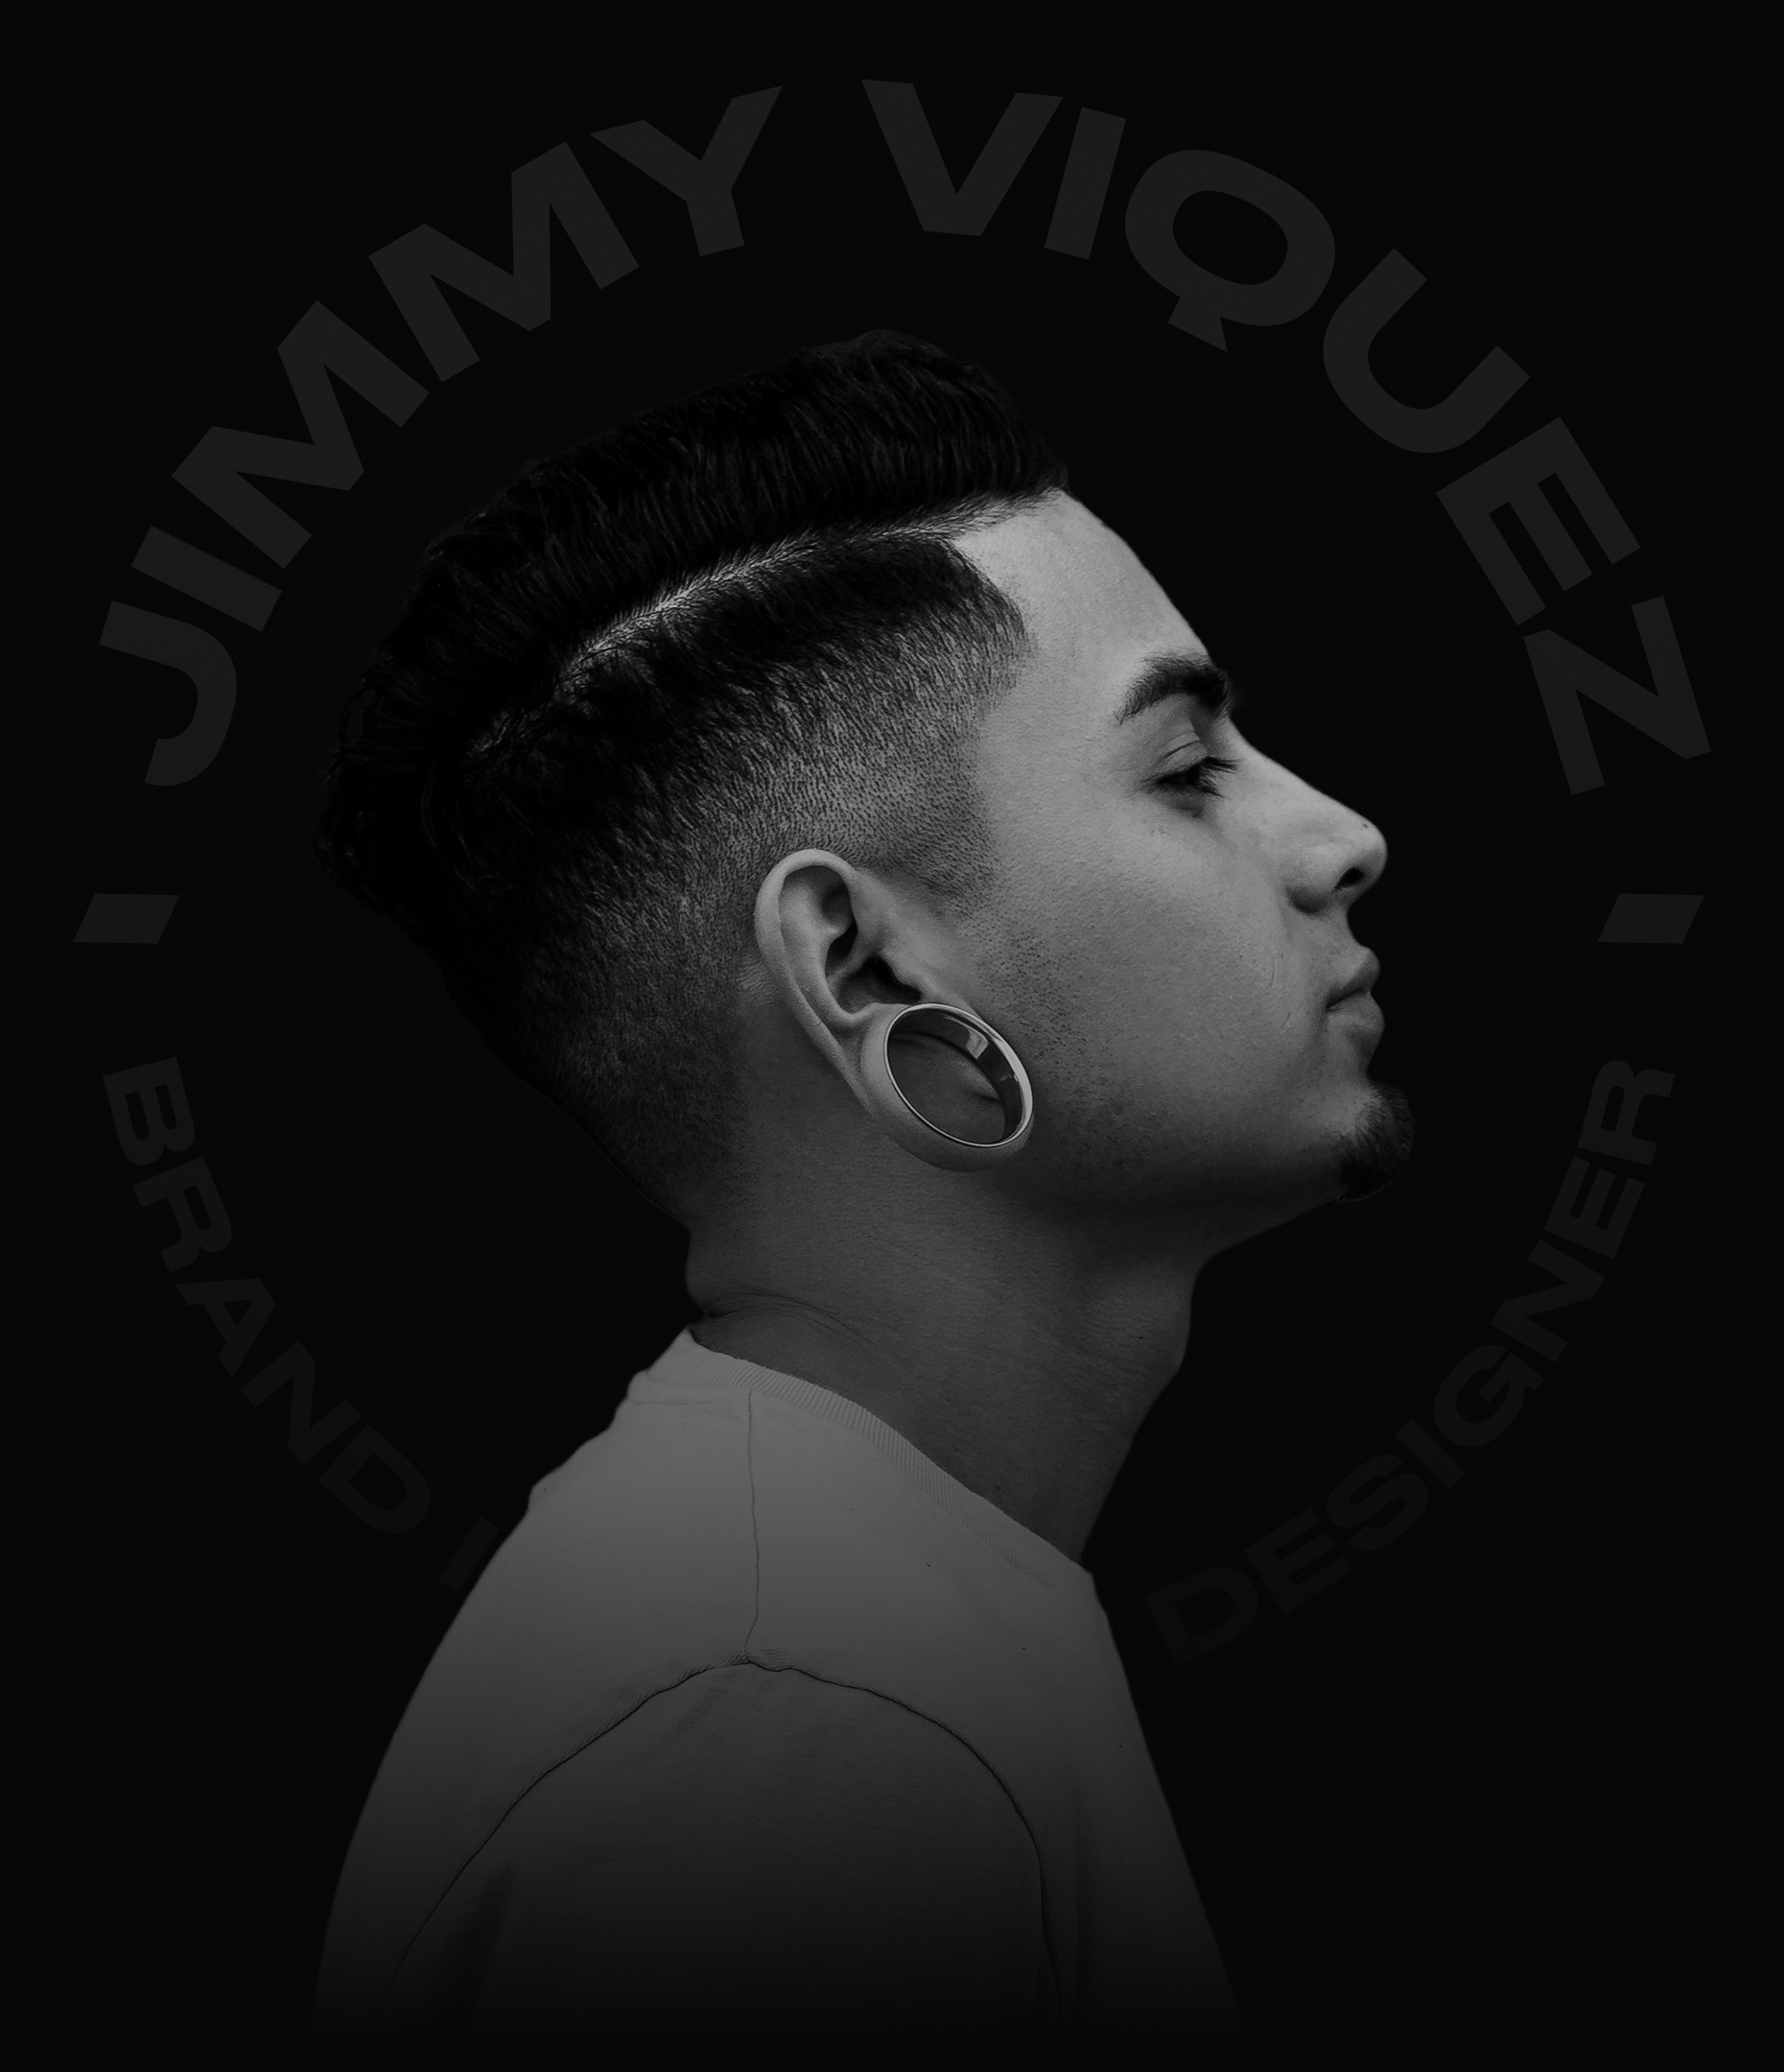 Side portrait of Jimmy Viquez, a brand identity graphic designer.